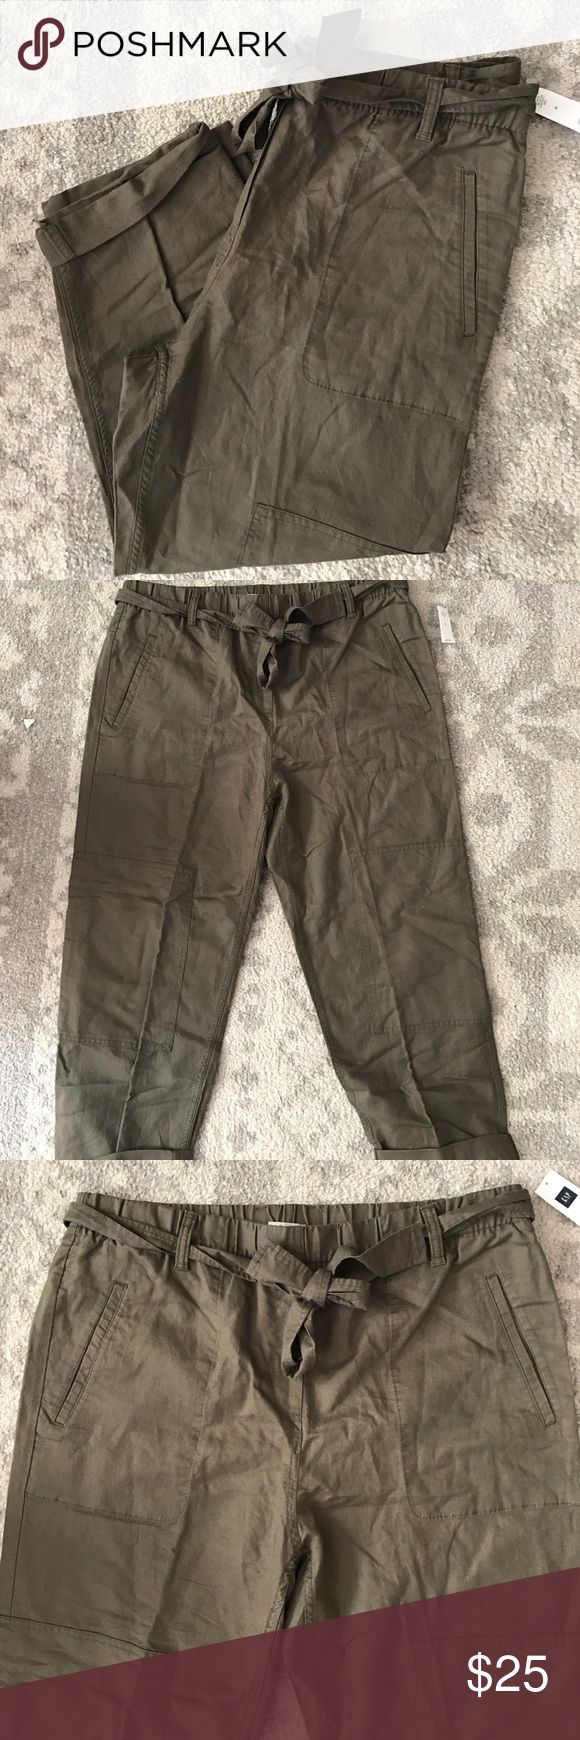 Gap Karate Pant New Army Green NWT. No flaws just a little wrinkly from storage. GAP Pants Ankle & Cropped